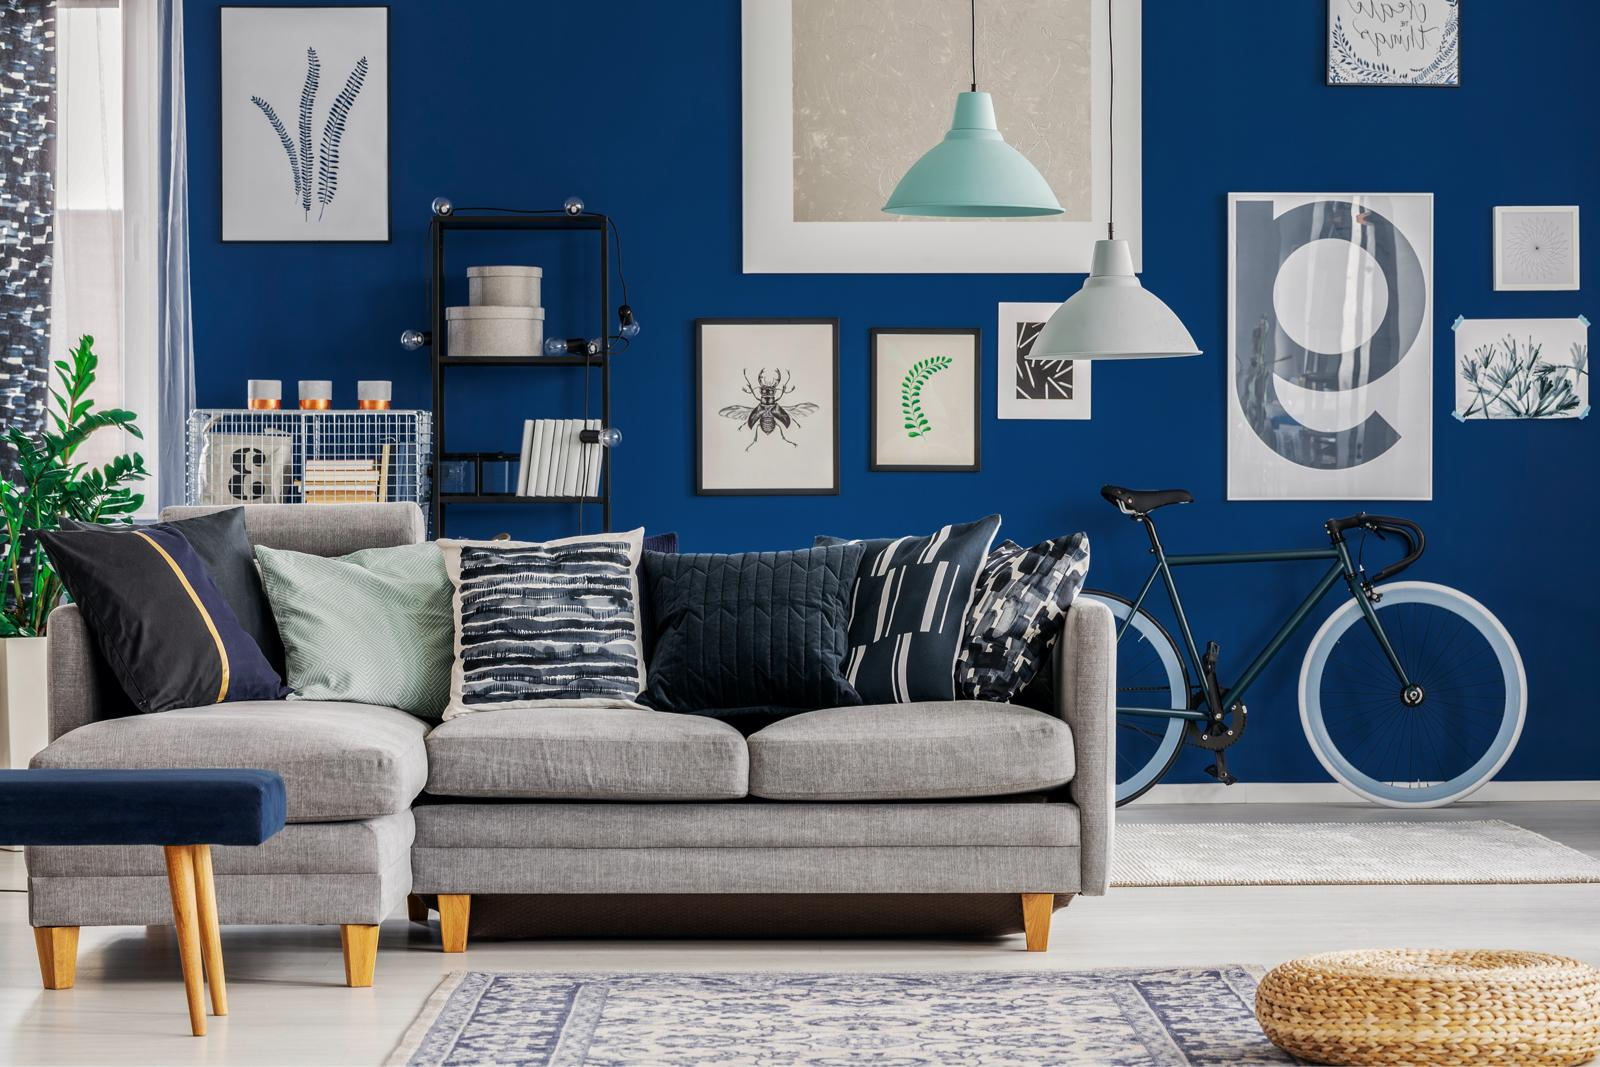 Maximalism Style And Why We Love It 12, Paneling Factory Of Virginia